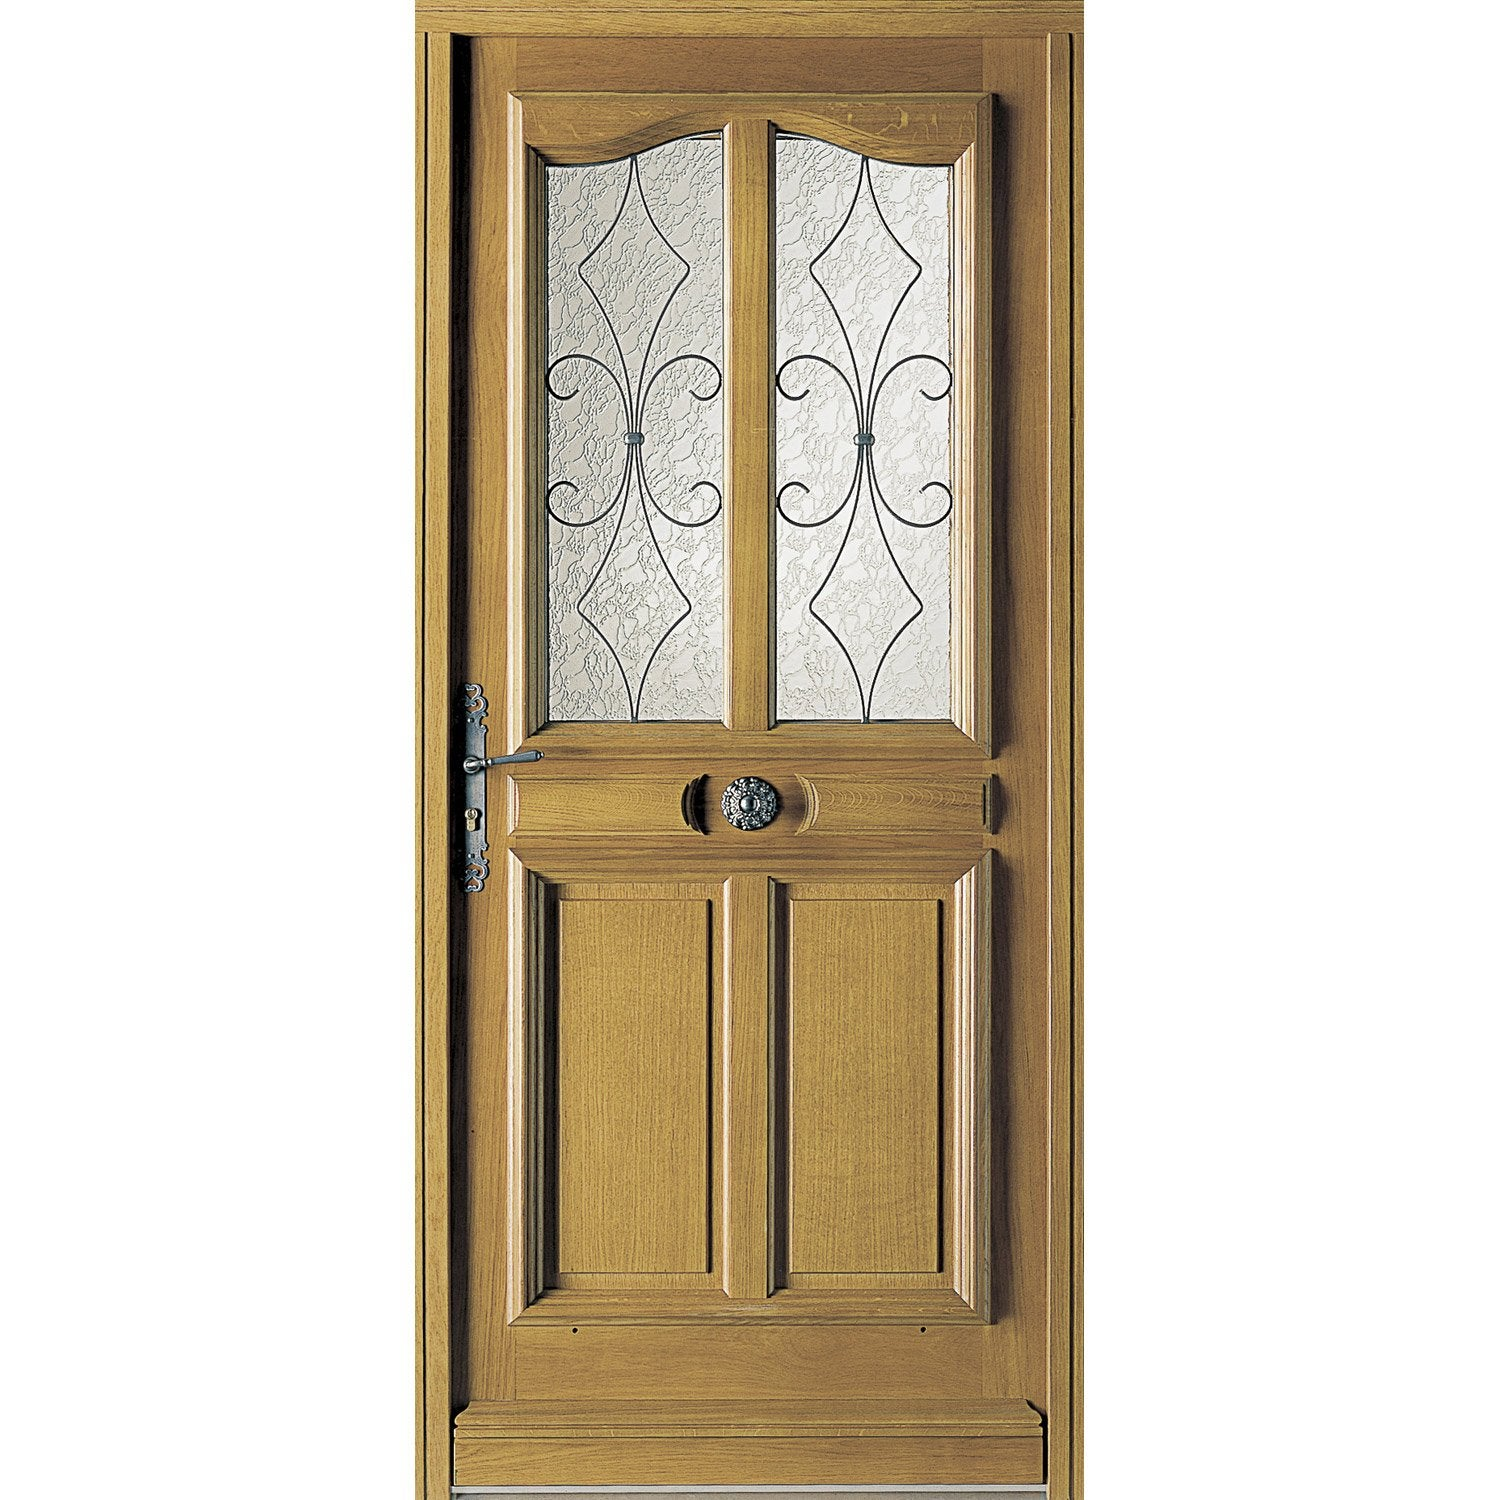 Porte d 39 entr e sur mesure en bois courchevel excellence for Porte en bois standard